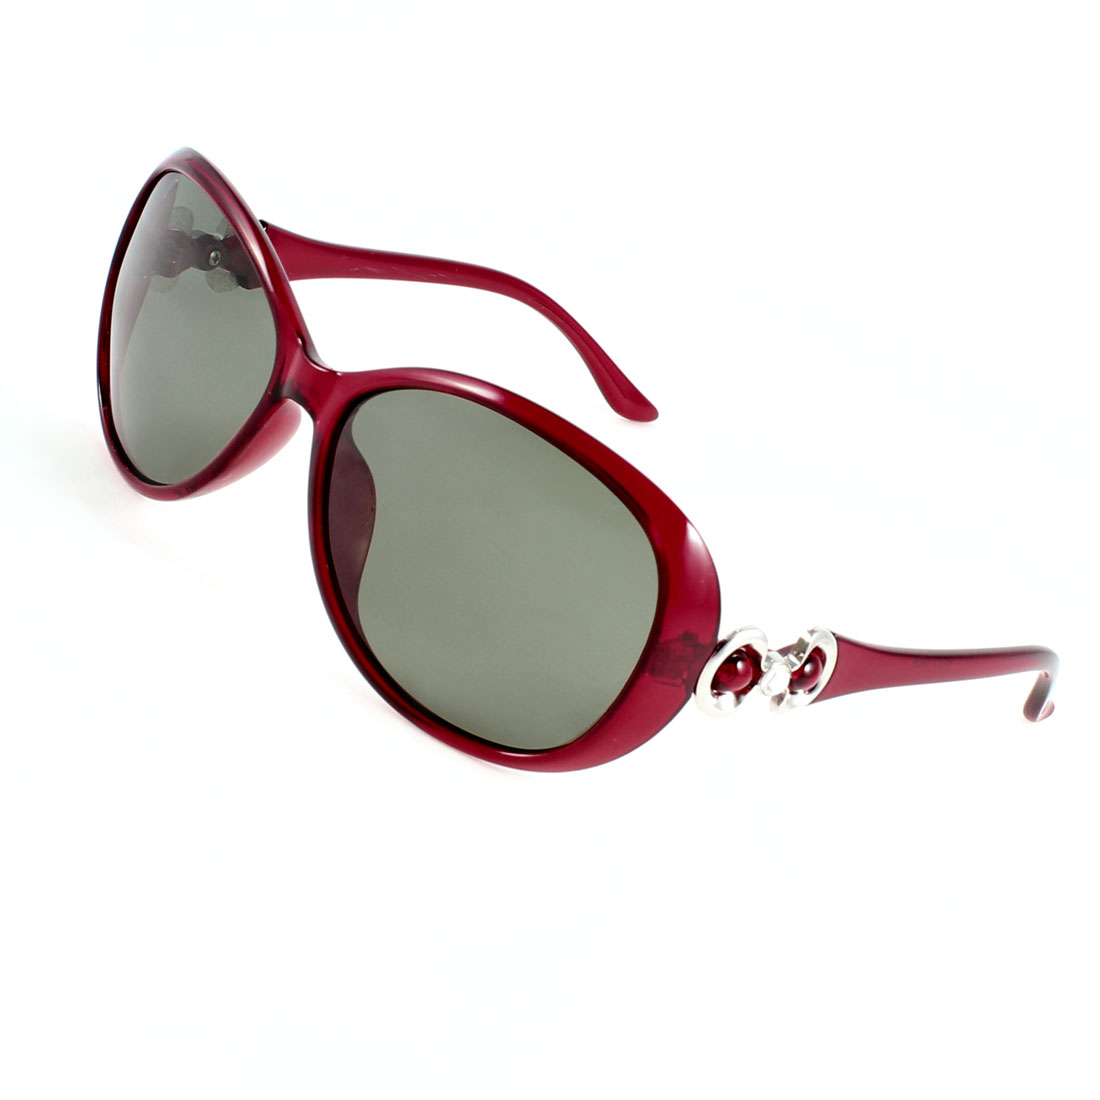 Ladies Red Plastic Bowtie Detail Arms Single Bridge Polarized Sunglasses